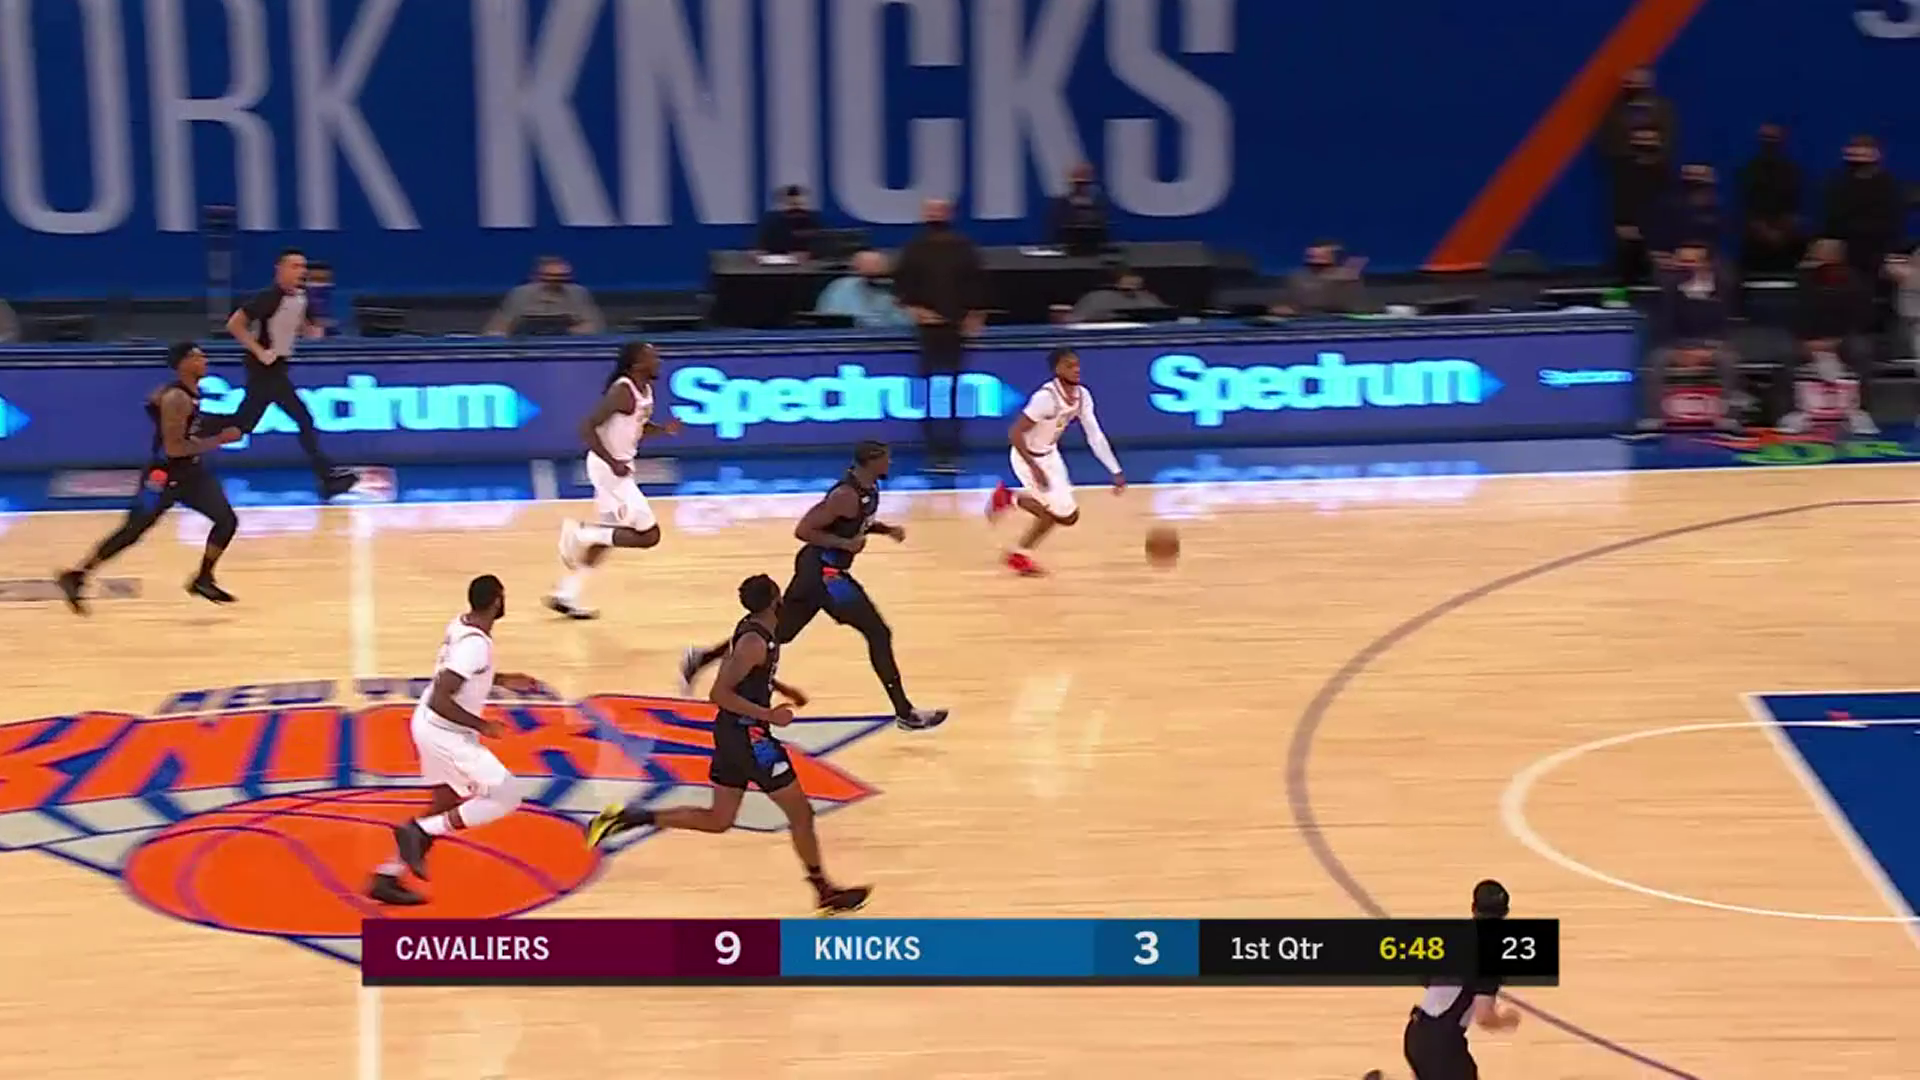 Garland Gets the Steal & Scores